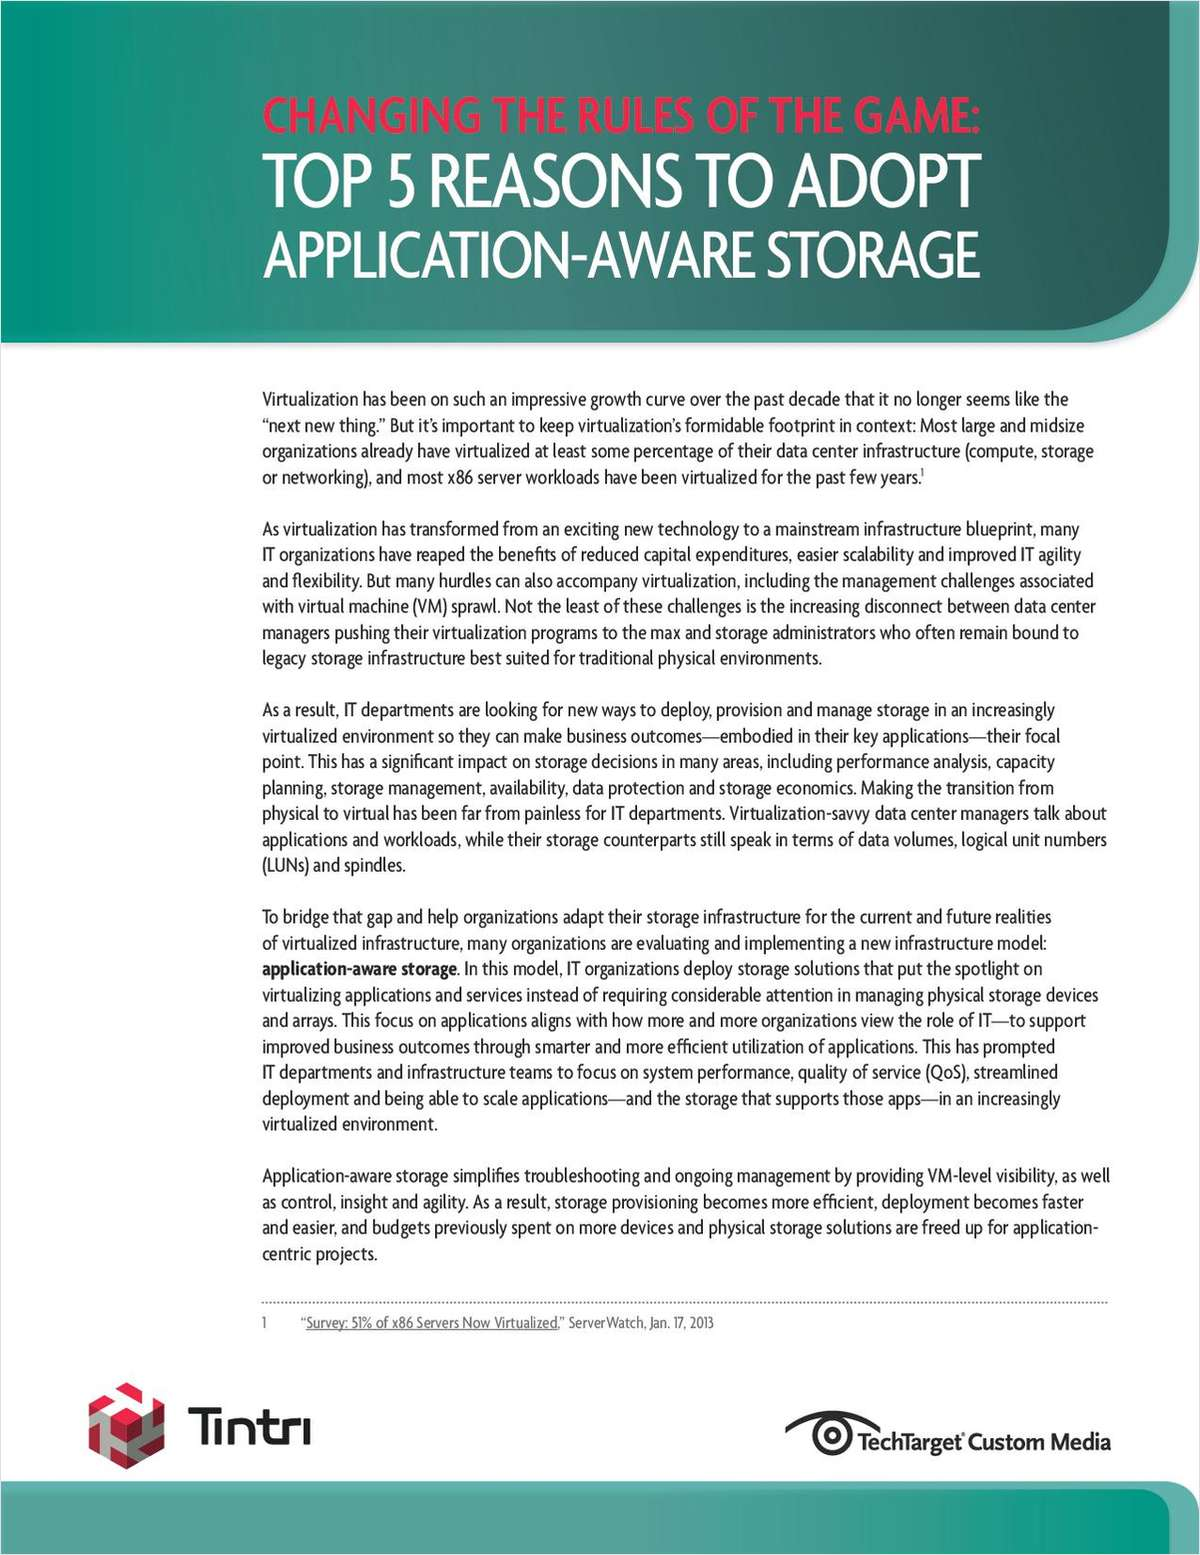 Changing The Rules Of The Game: Top 5 Reasons To Adopt Application-Aware Storage